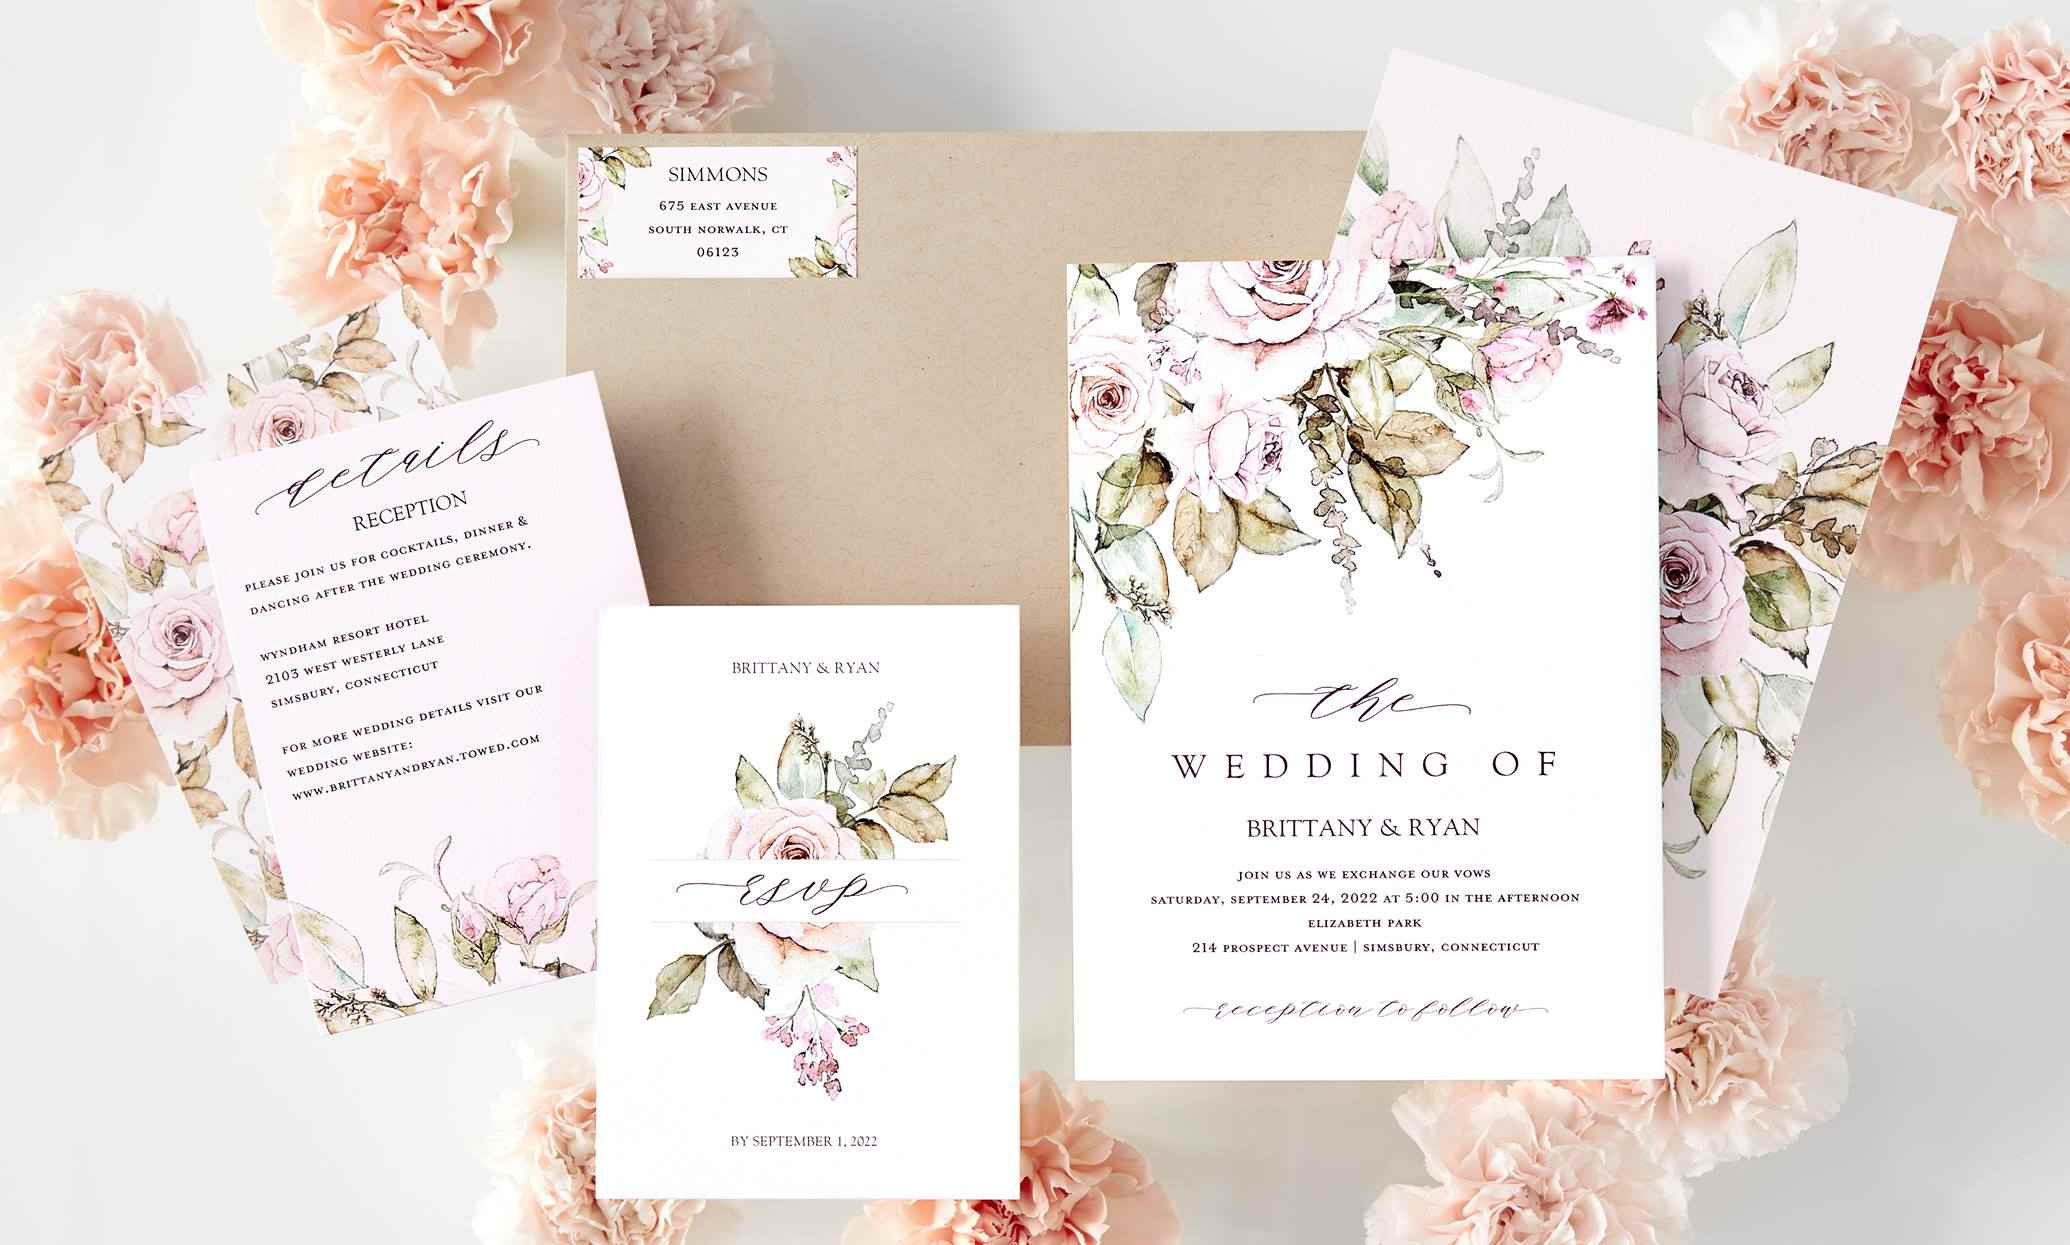 A set of wedding invitation samples with flowers